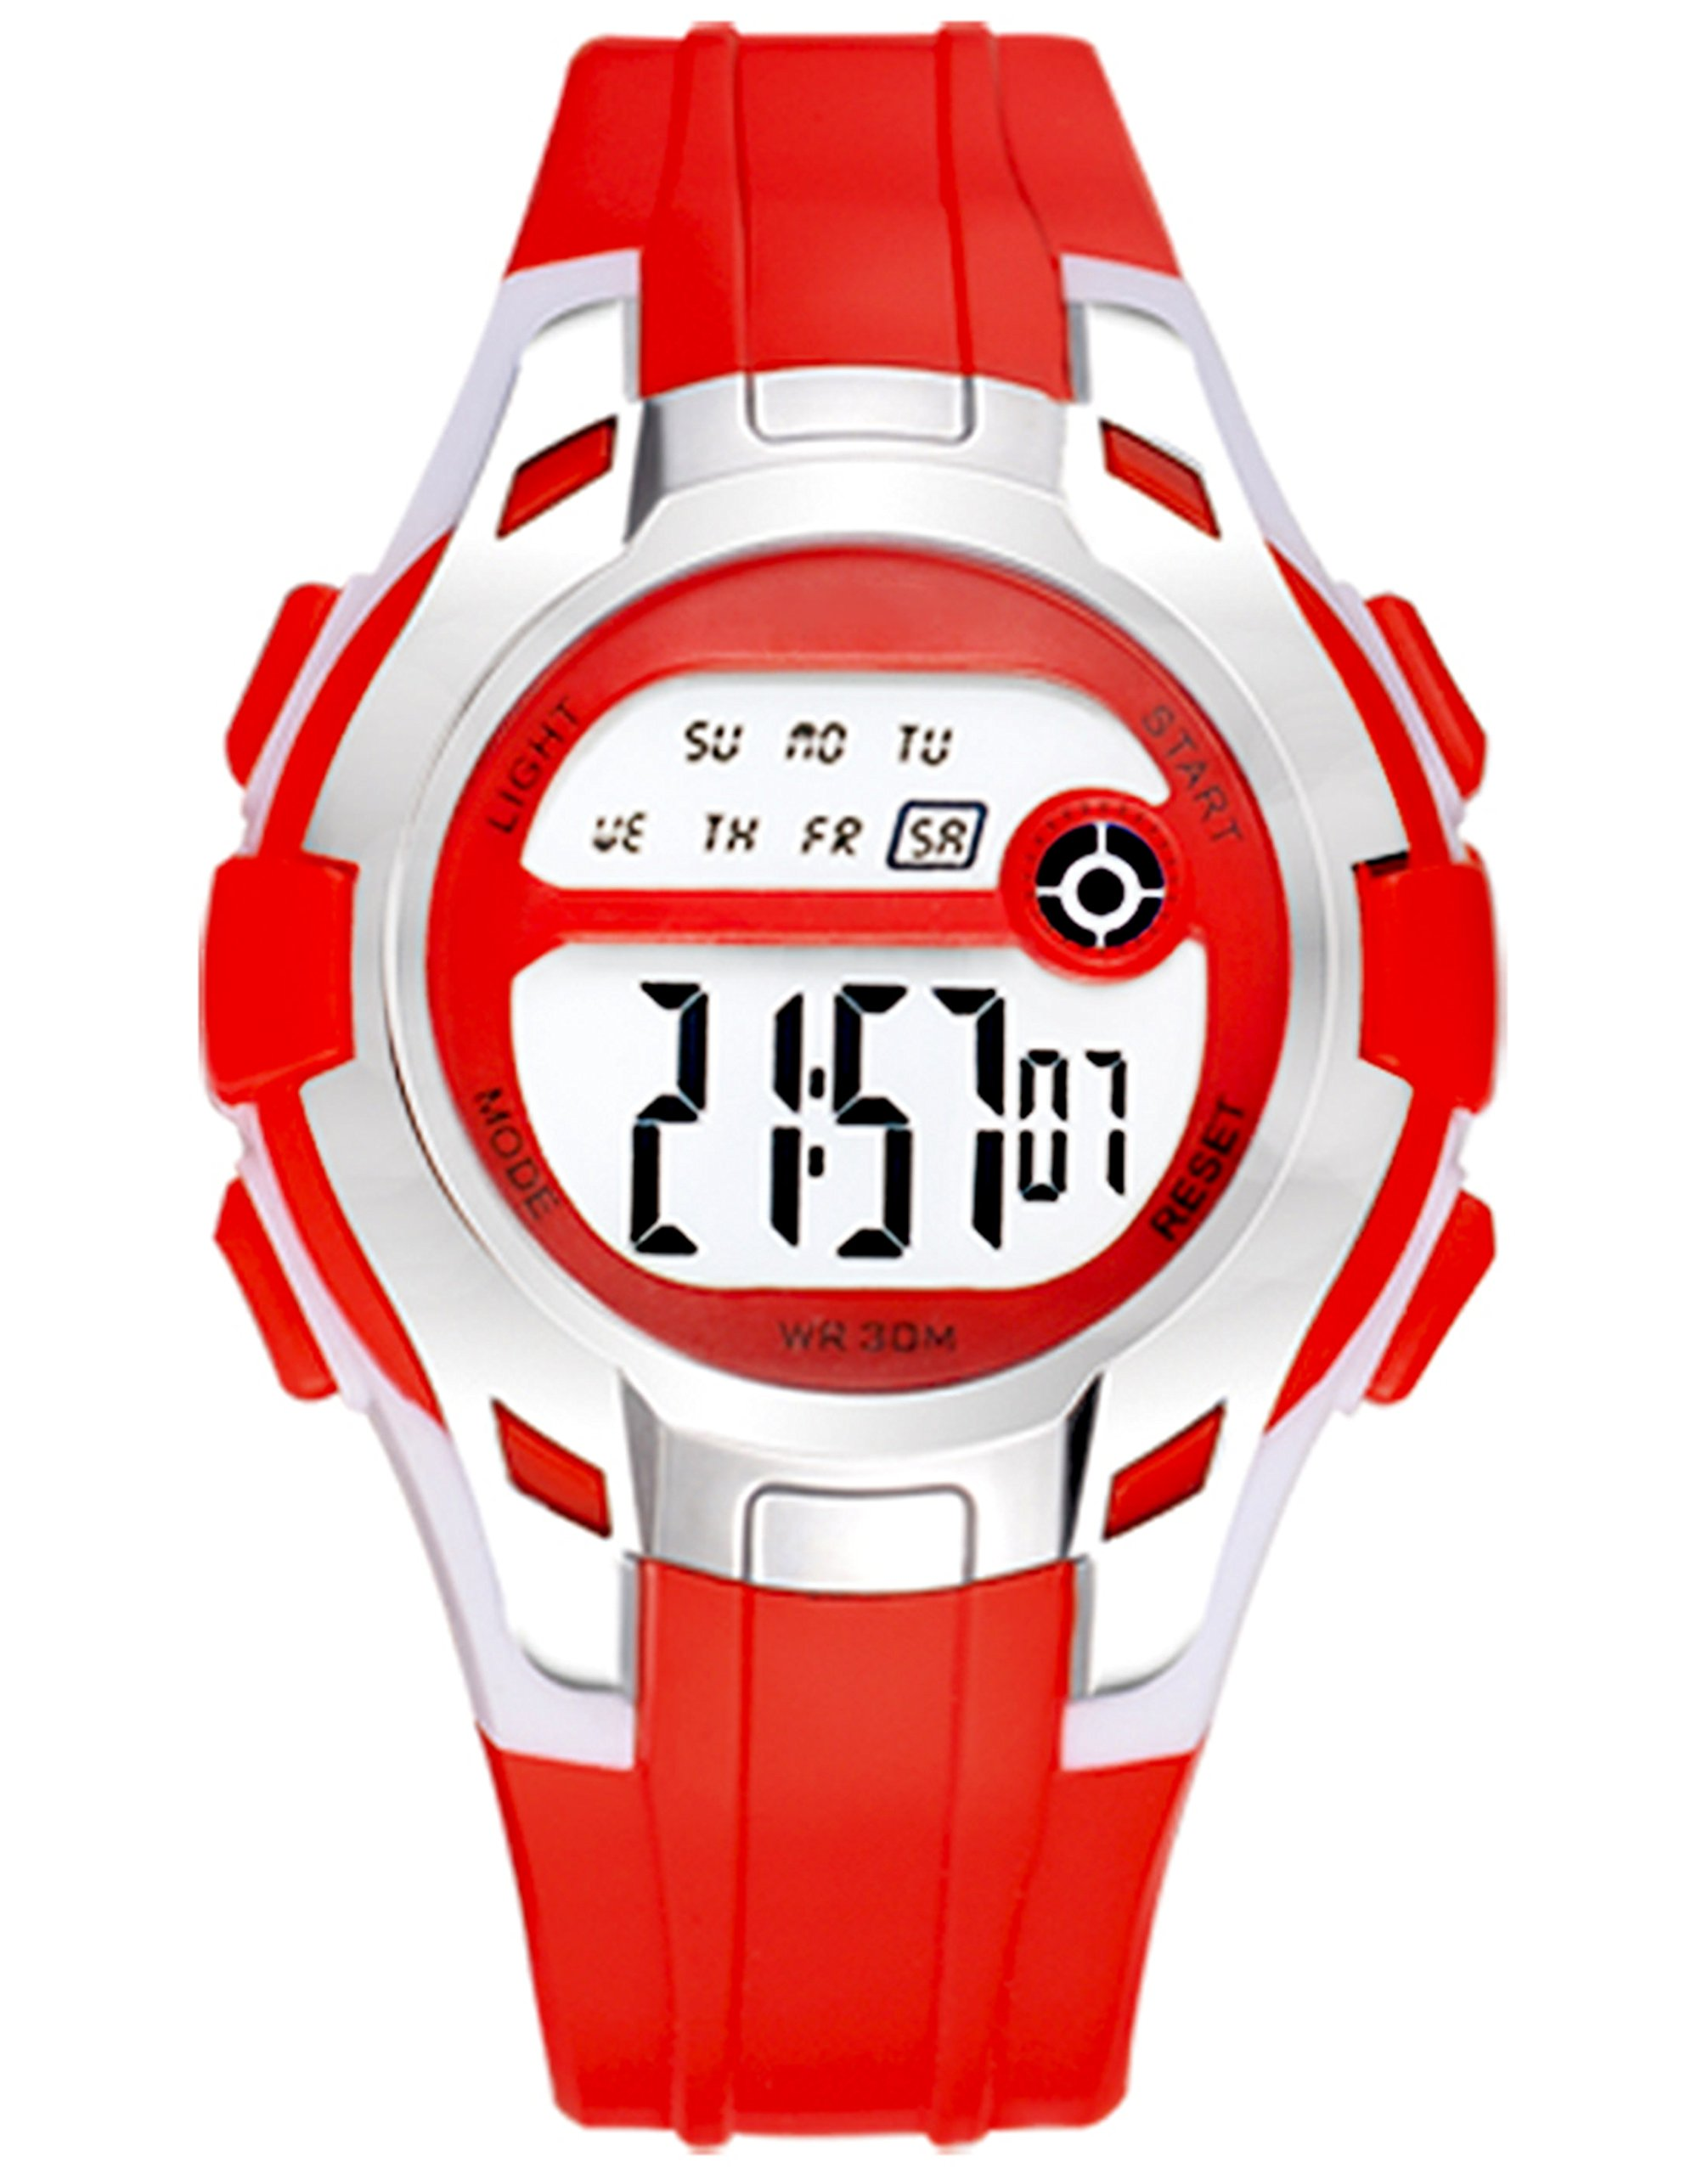 TIME UP Digital Steel Style Dial Alarm Multi-Functions Sports Watch for Kids-KMR-8561112-7 (B07CFTT2PN) Amazon Price History, Amazon Price Tracker